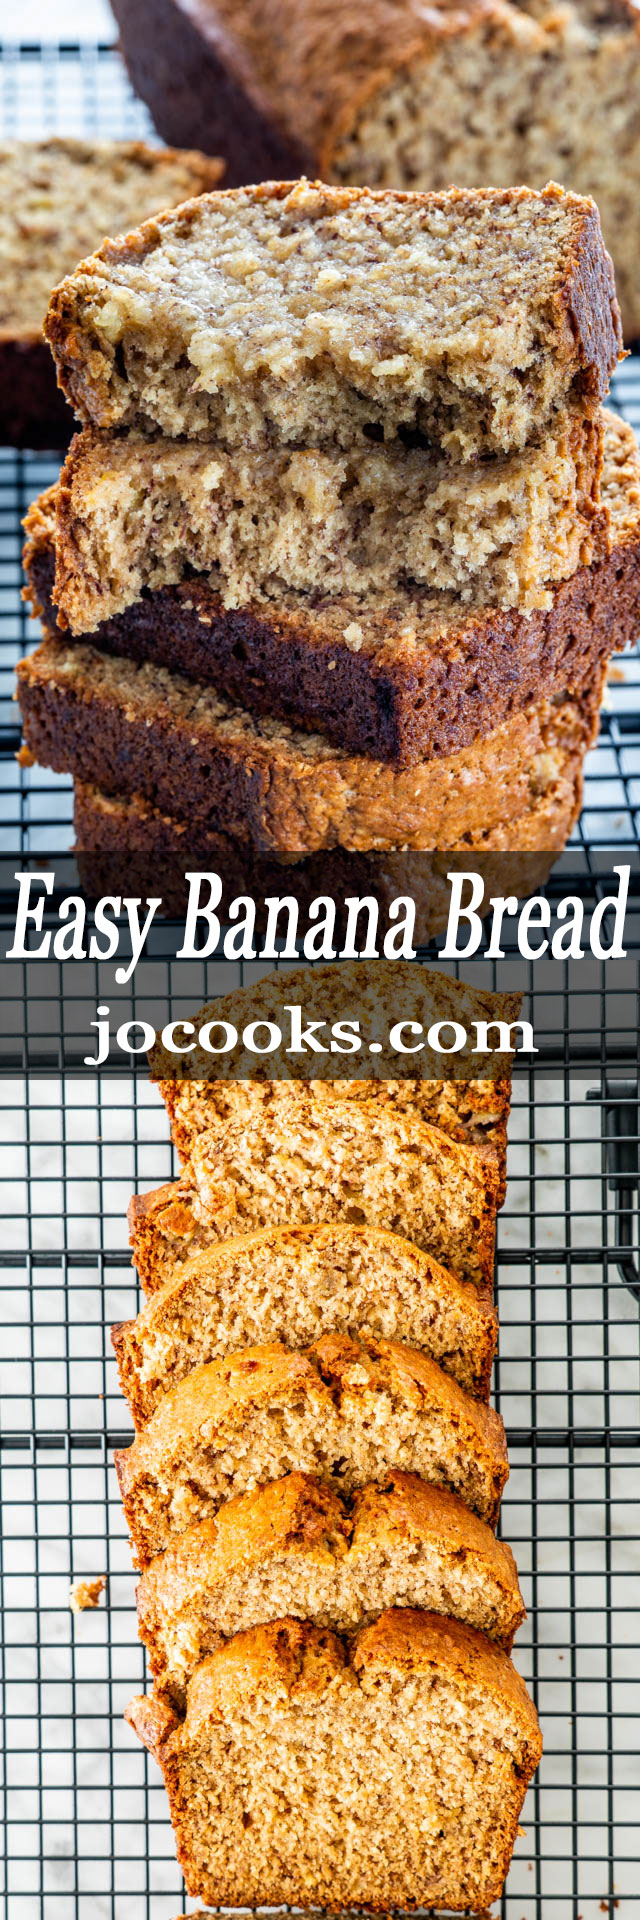 This Easy Banana Bread recipe has been my go-to for decades. It truly is a no fail recipe; simple and delicious. No mixer needed for this fabulous, moist bread! #bananabread